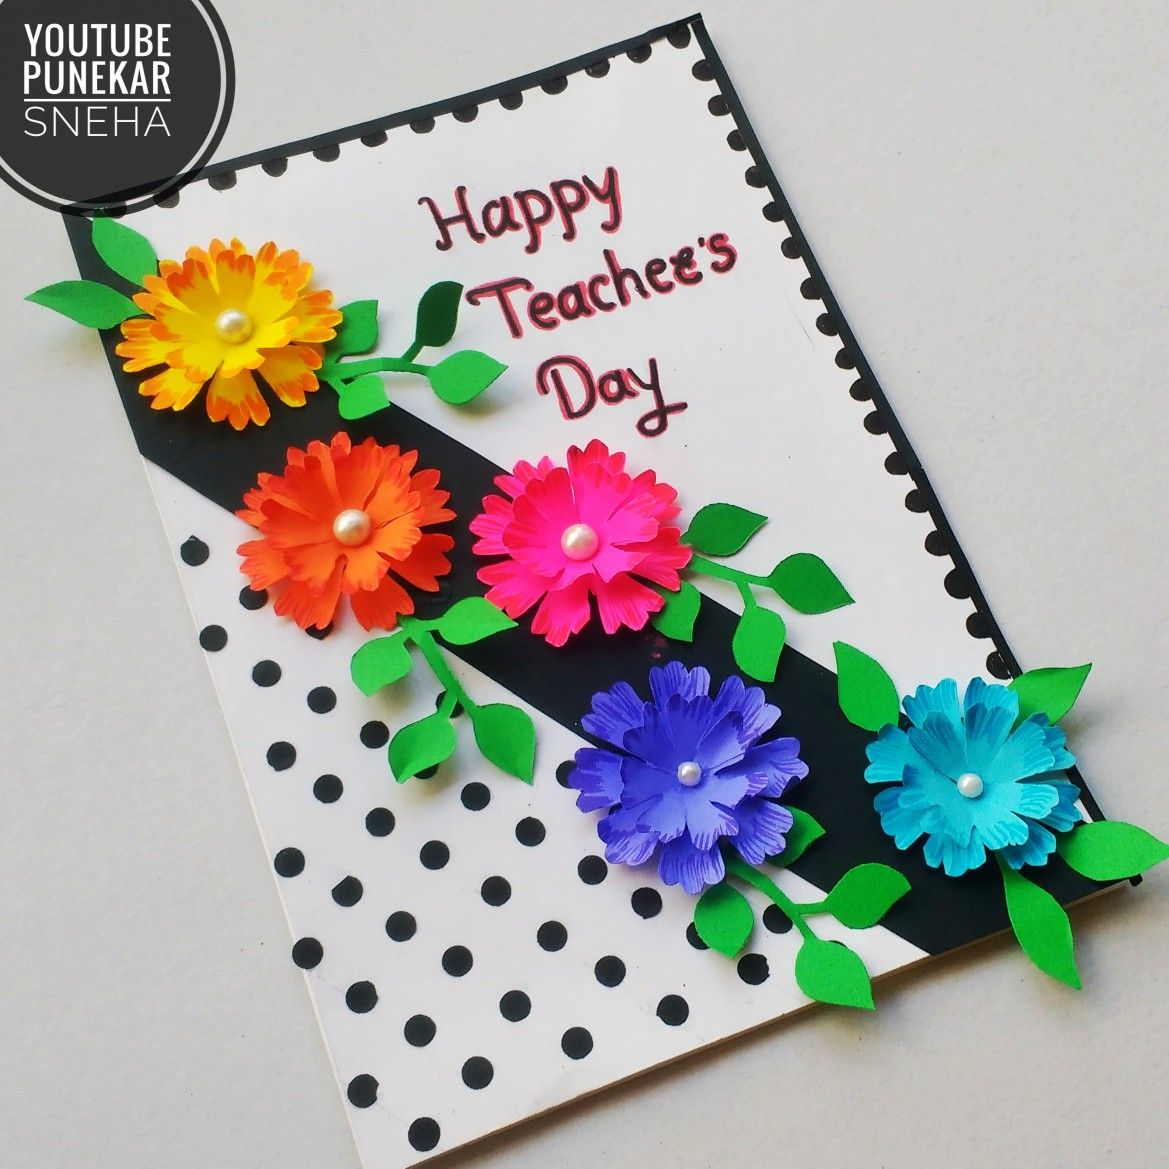 Teacher S Day Card Making How To Make Easy Teachers Day Card Making By Punekar Sneha In 2020 Teacher Birthday Card Happy Teachers Day Card Teacher Cards